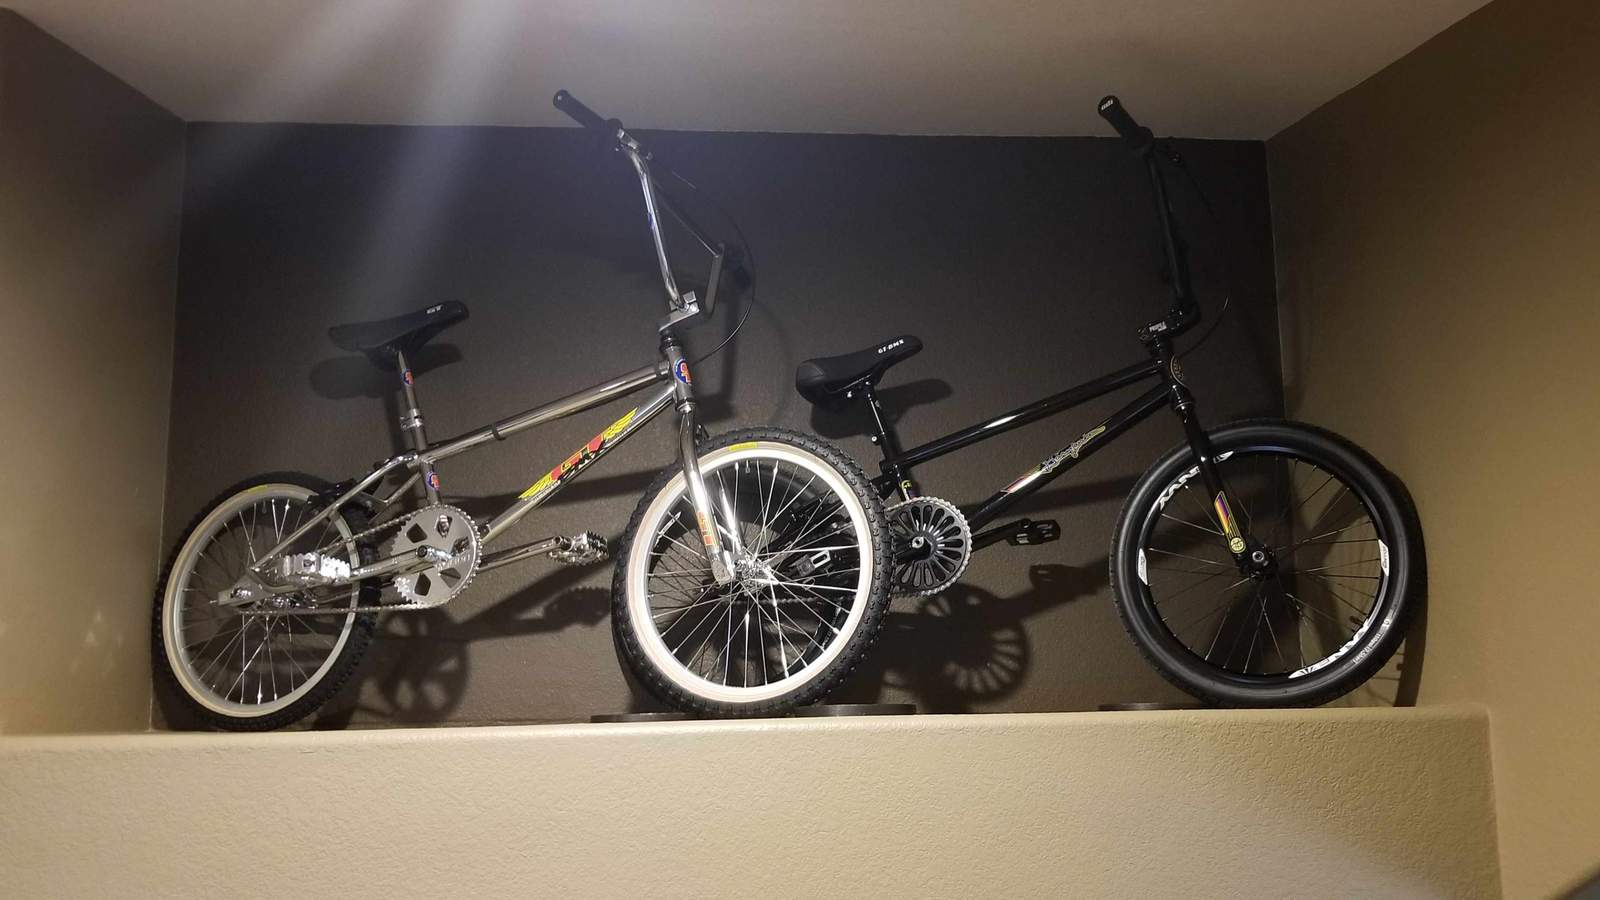 https://s3.amazonaws.com/uploads.bmxmuseum.com/user-images/8754/_img_000000_0000005f27512b61.jpg